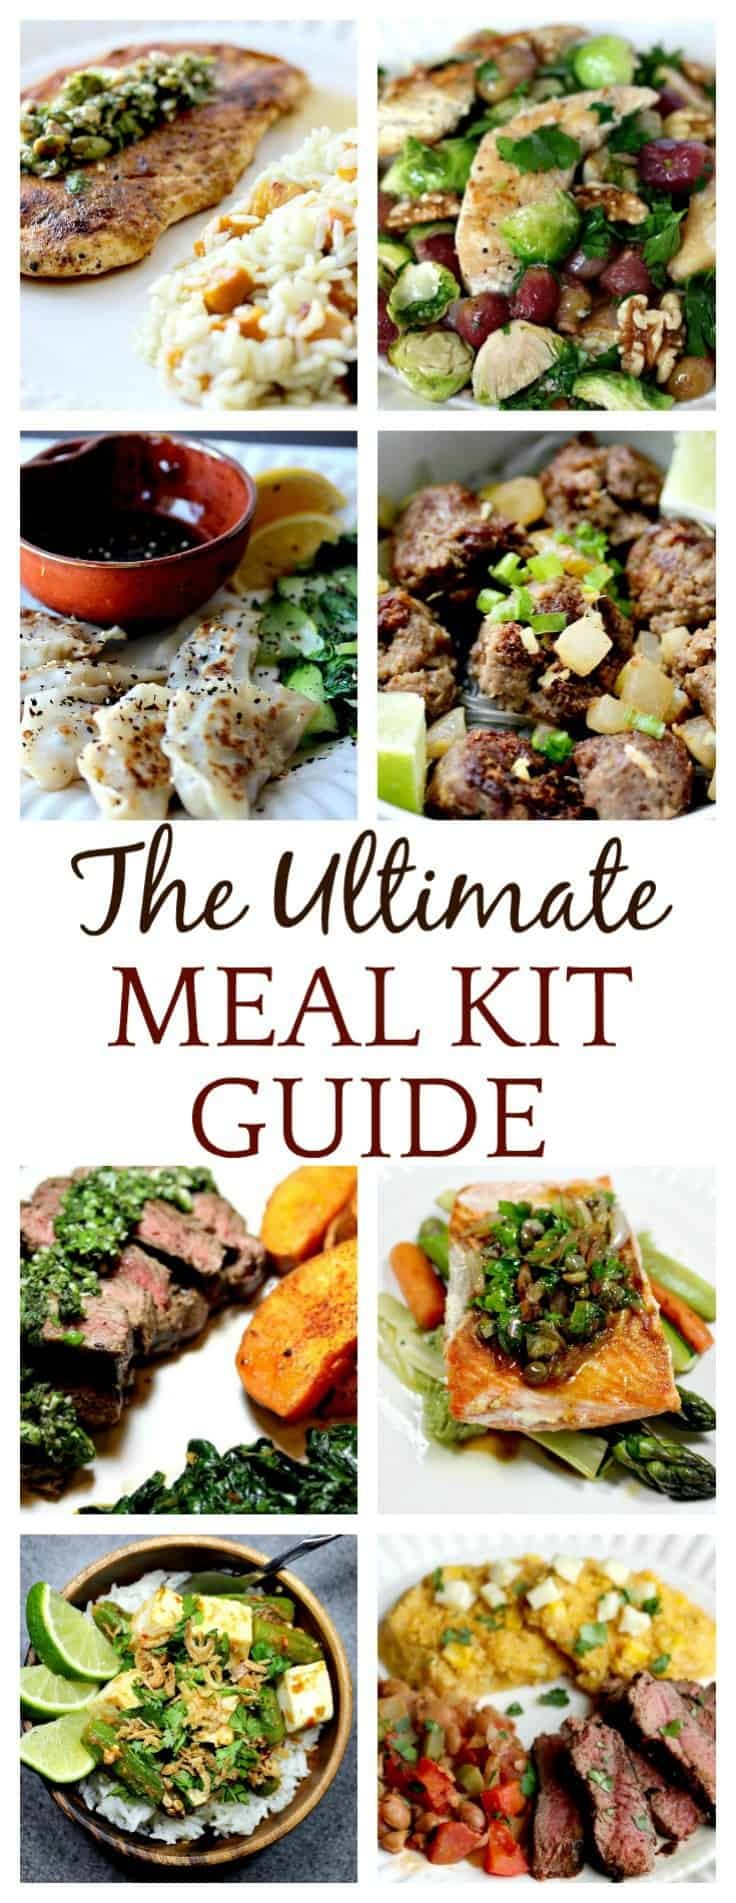 With meal kit subscriptions popping up all over, it can be hard to know which may be the right ones for you! The Ultimate Meal Kit Subscription Guide breaks down the pros and cons of some f the most popular food subscription boxes available - including Blue Apron, Hello Fresh, Home Chef and more!